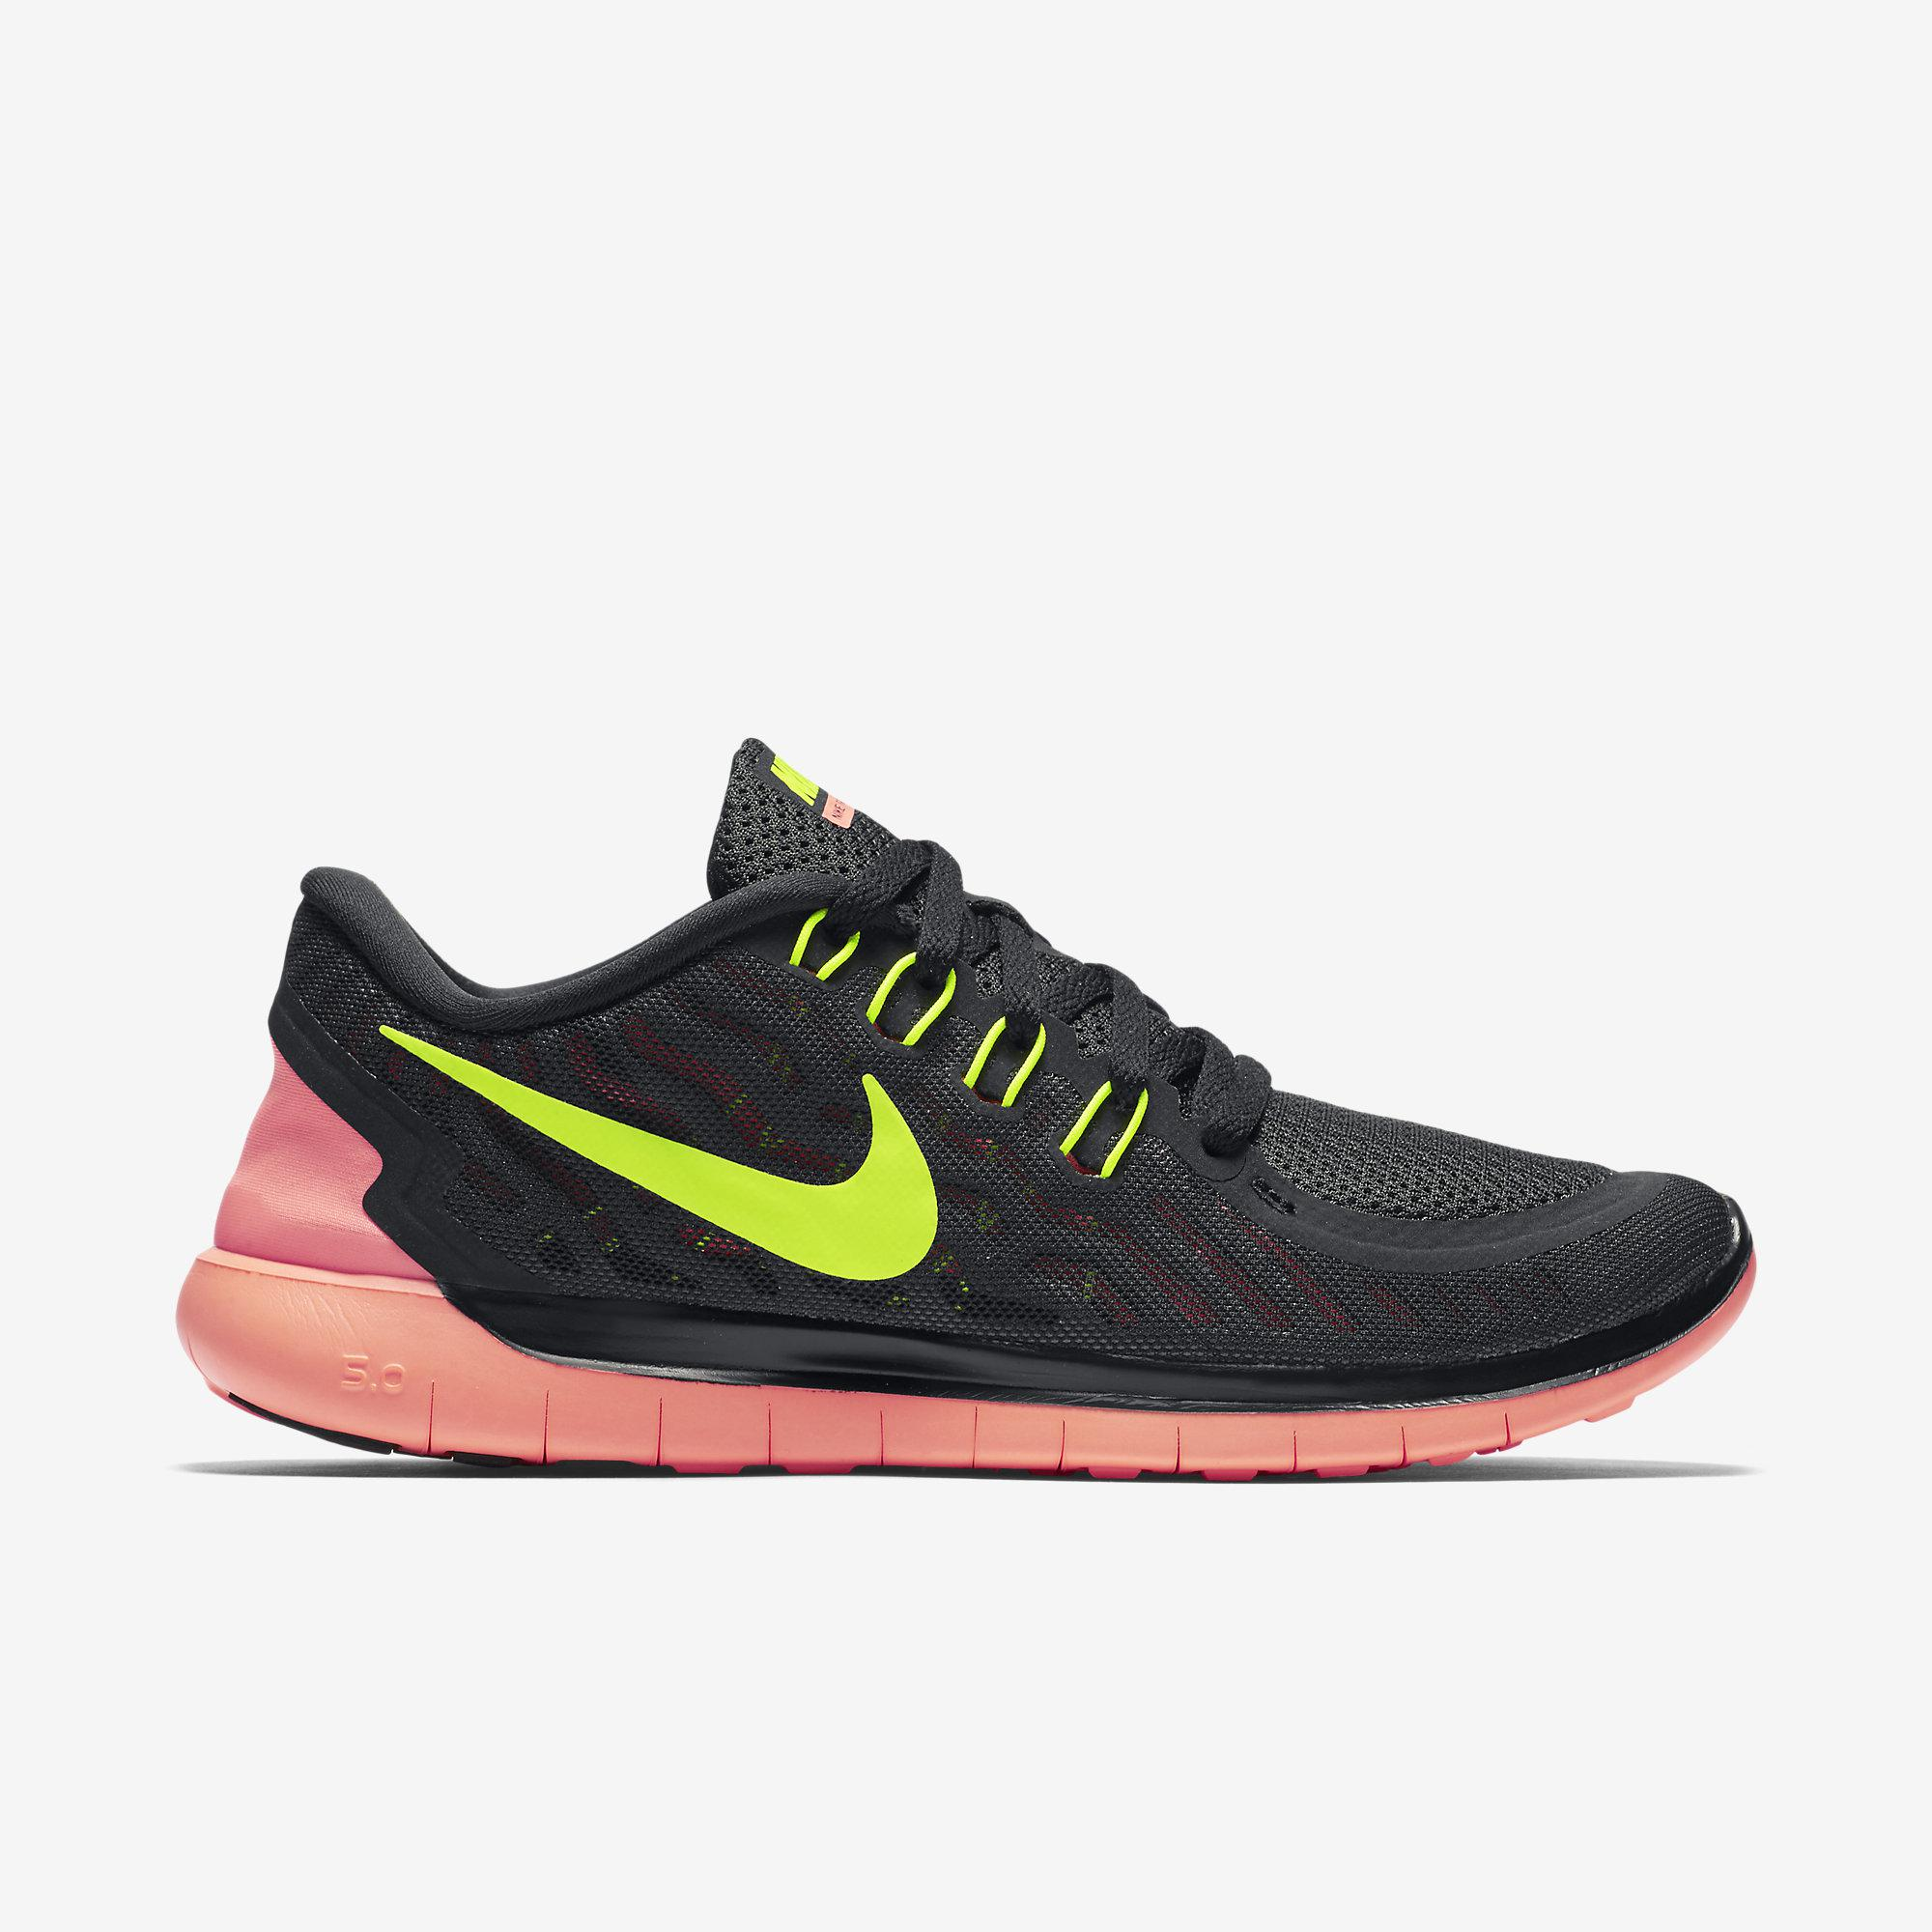 wholesale dealer 95b43 8b687 Nike Womens Free 5.0 Running Shoes - Black Yellow Mango - Tennisnuts.com